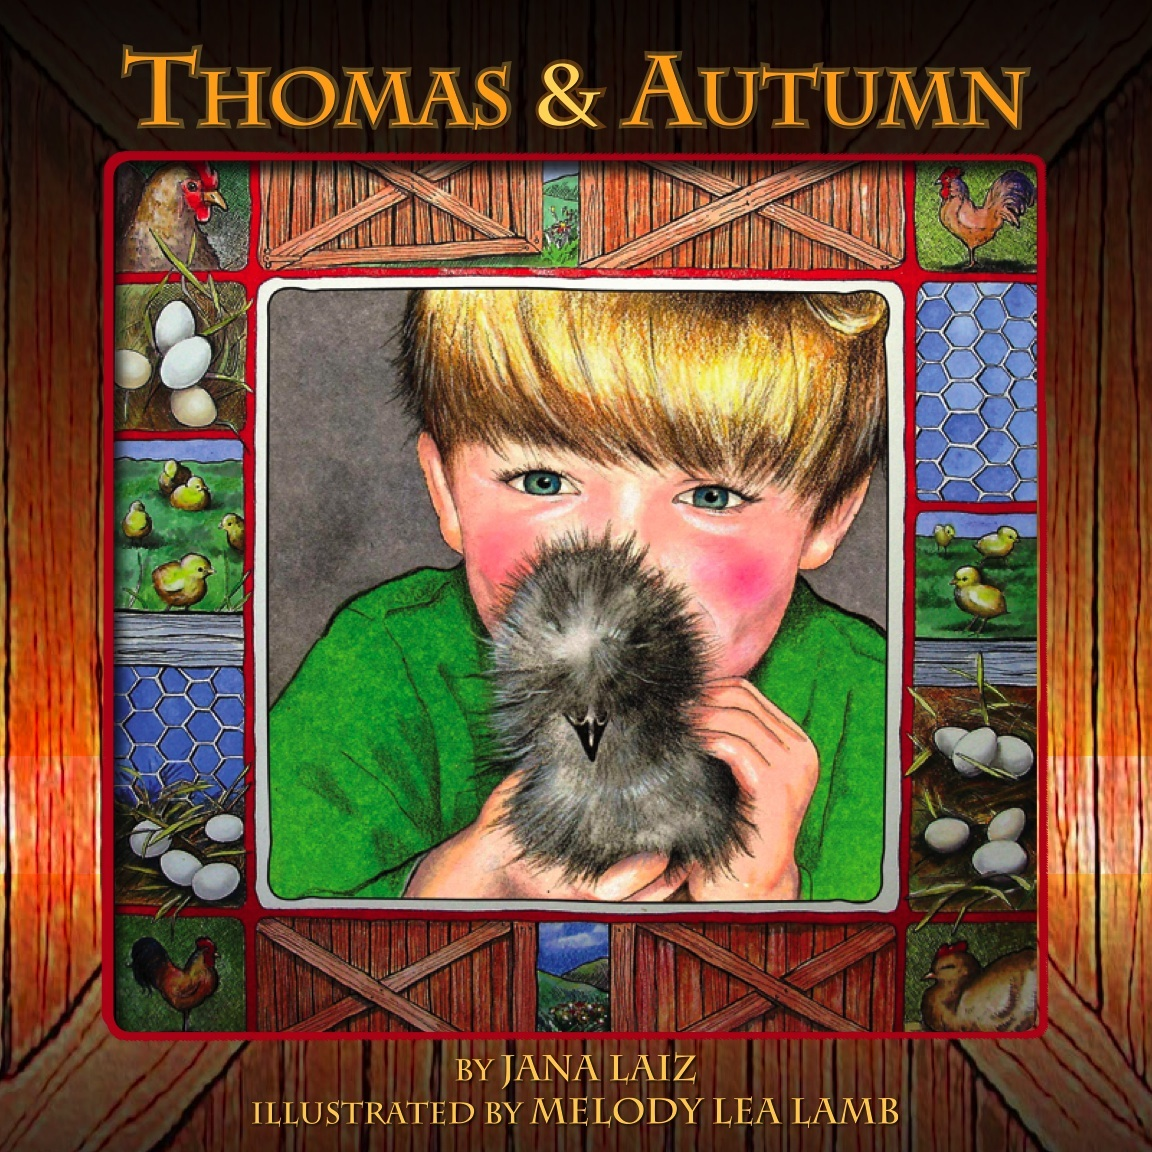 Thomas & Autumn